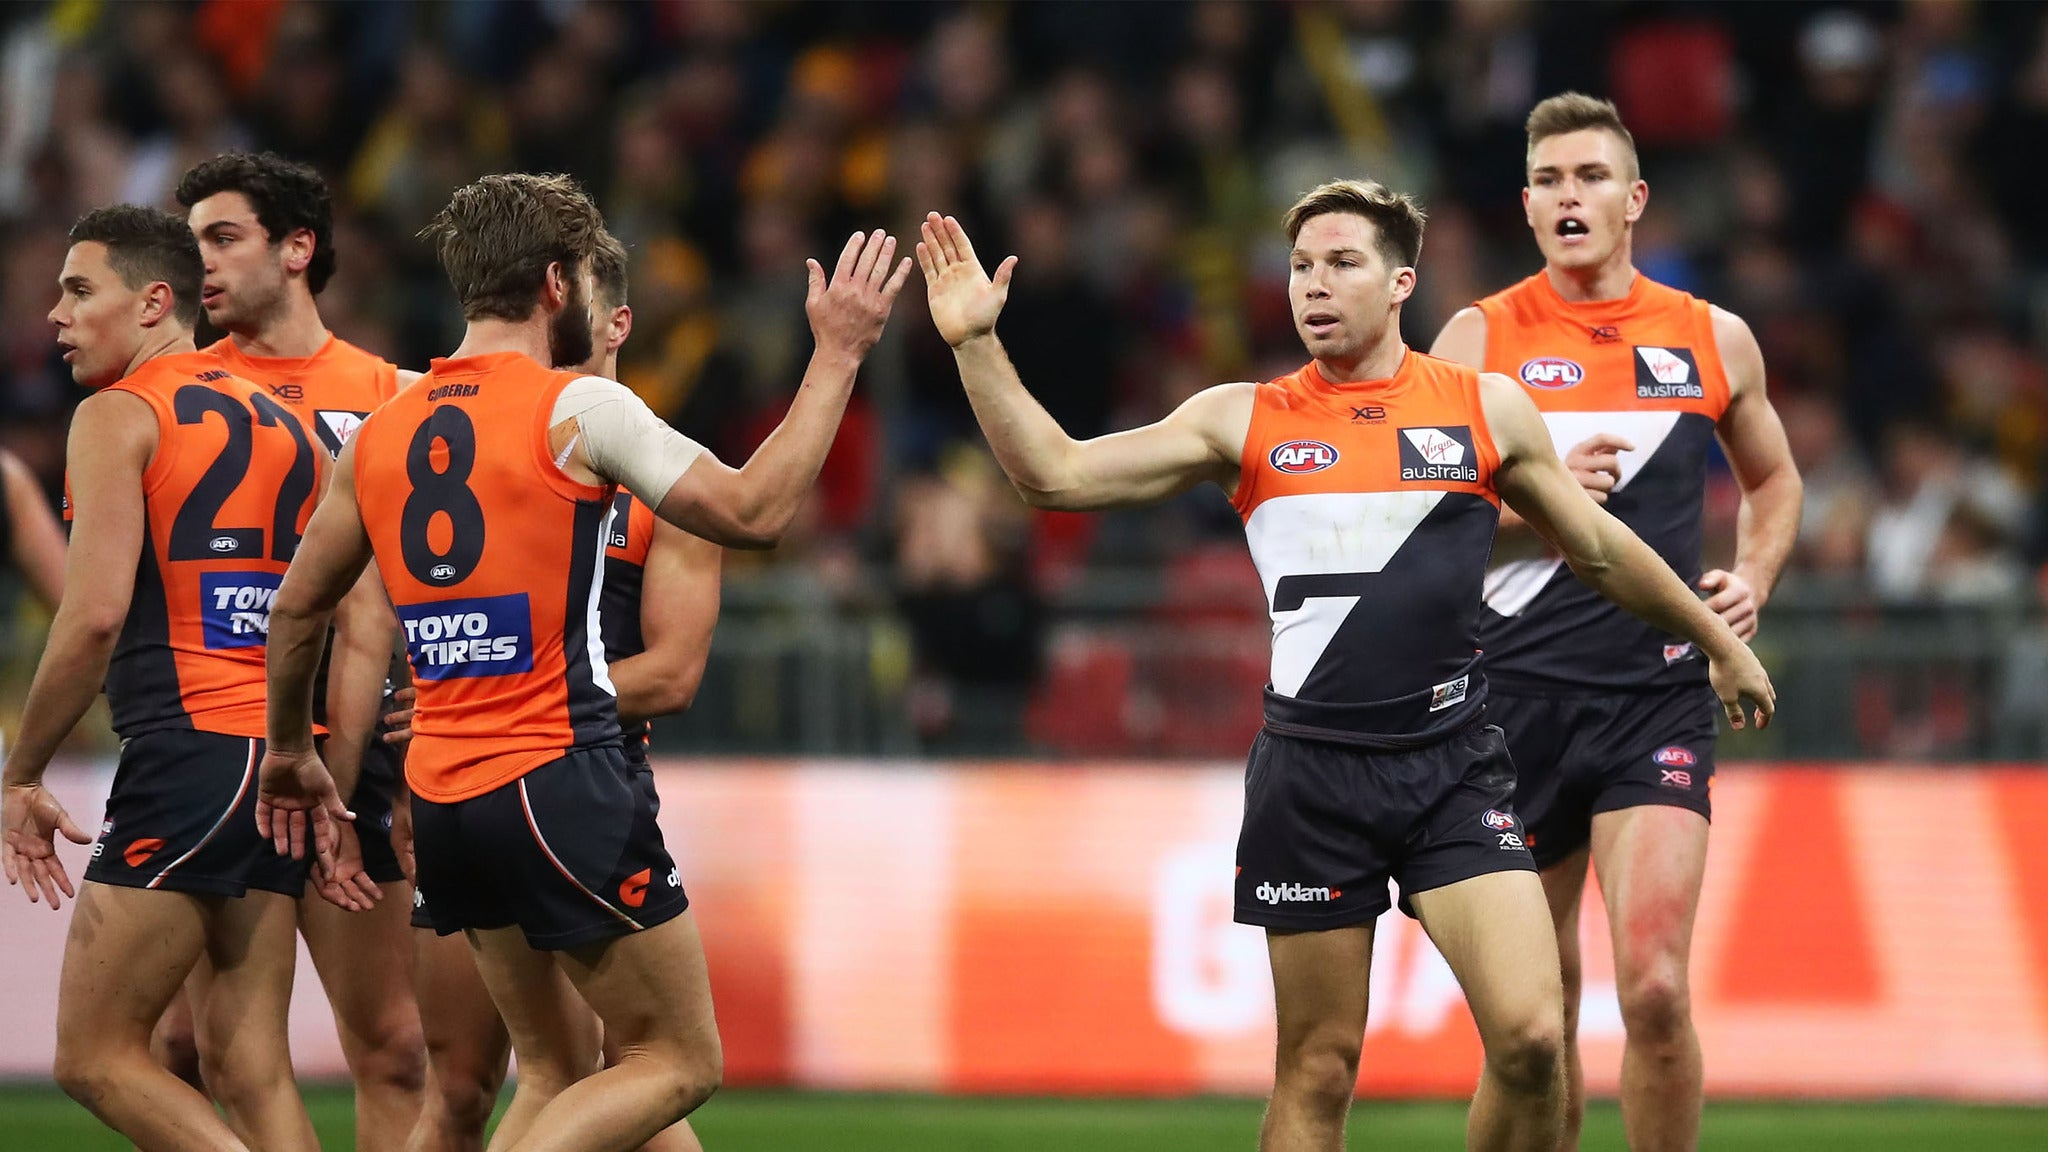 GWS GIANTS v Western Bulldogs - Premium Experience